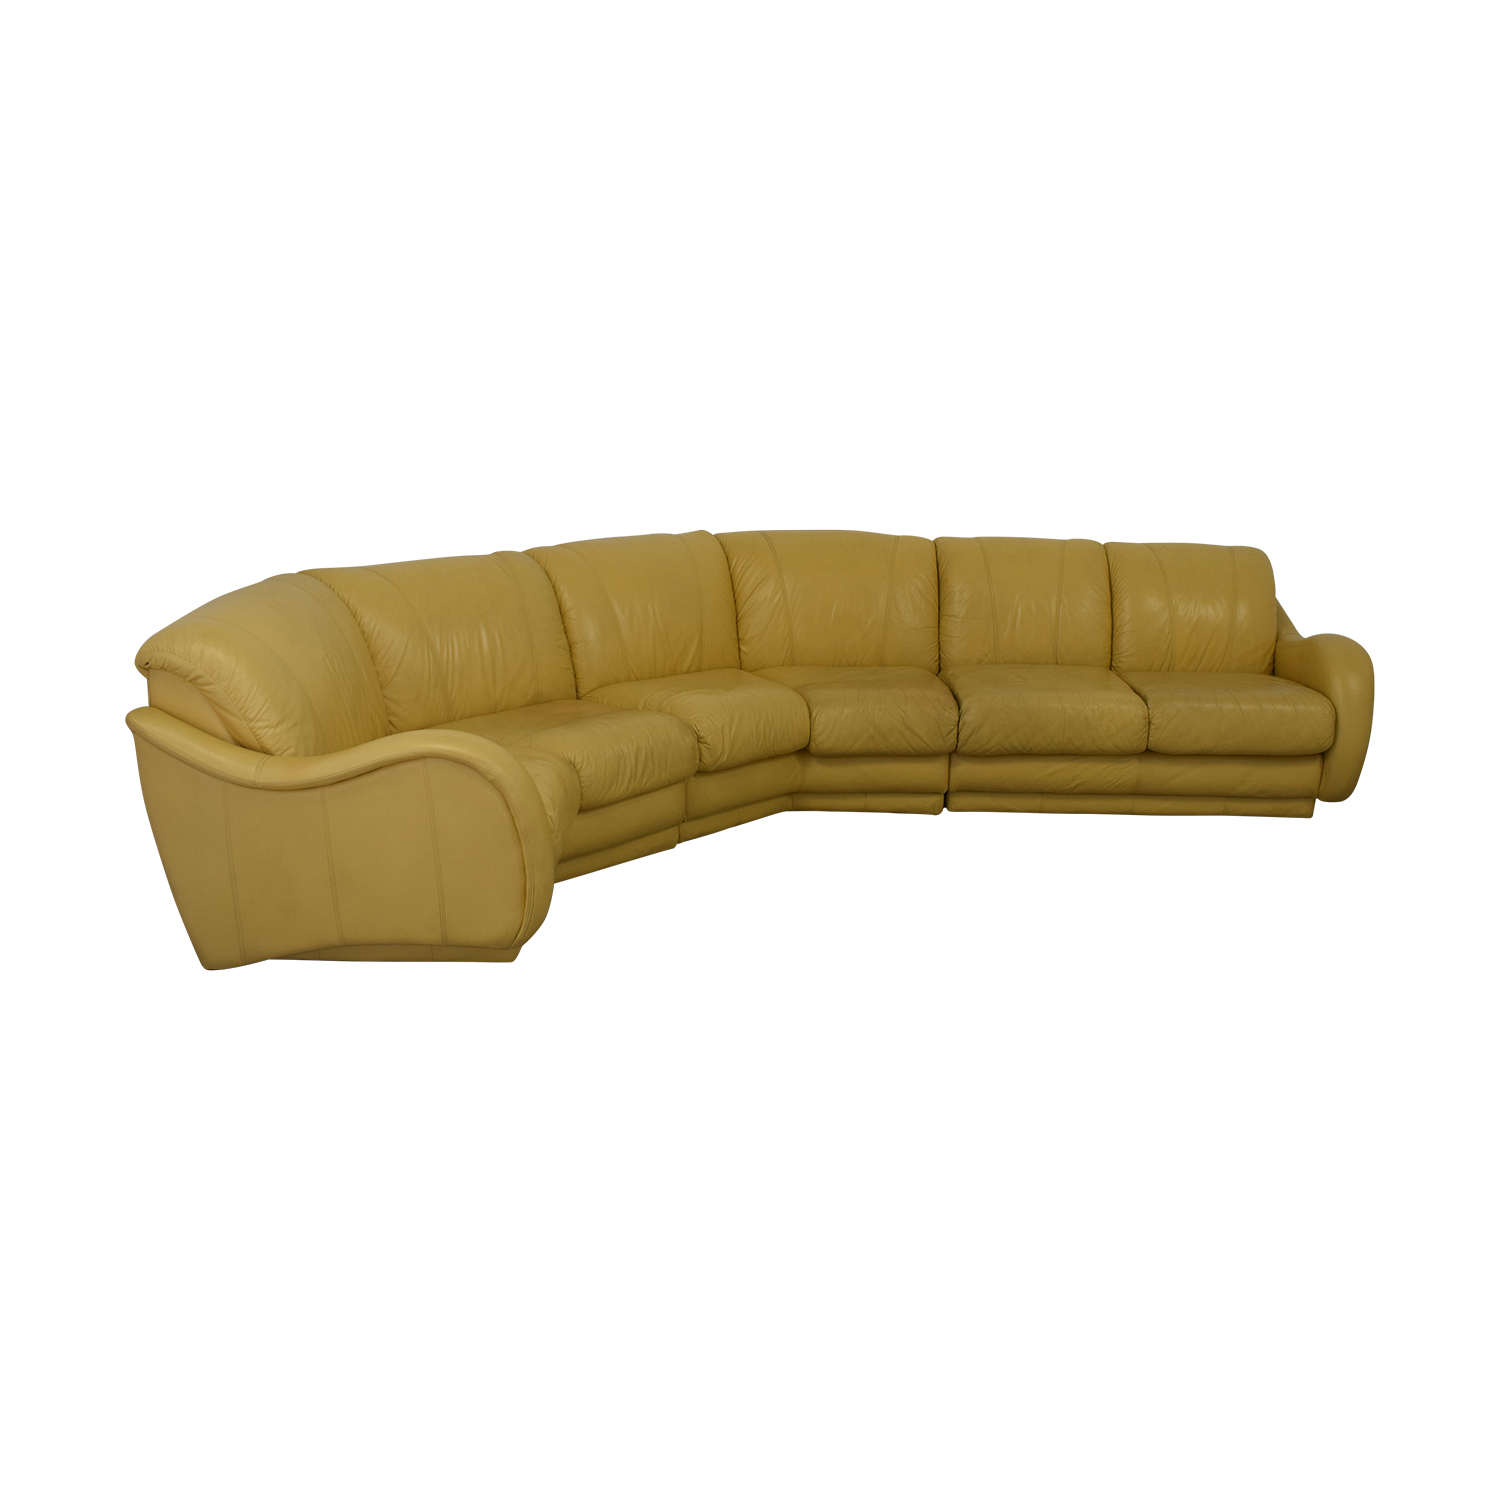 Leather Sectional Sofa for sale